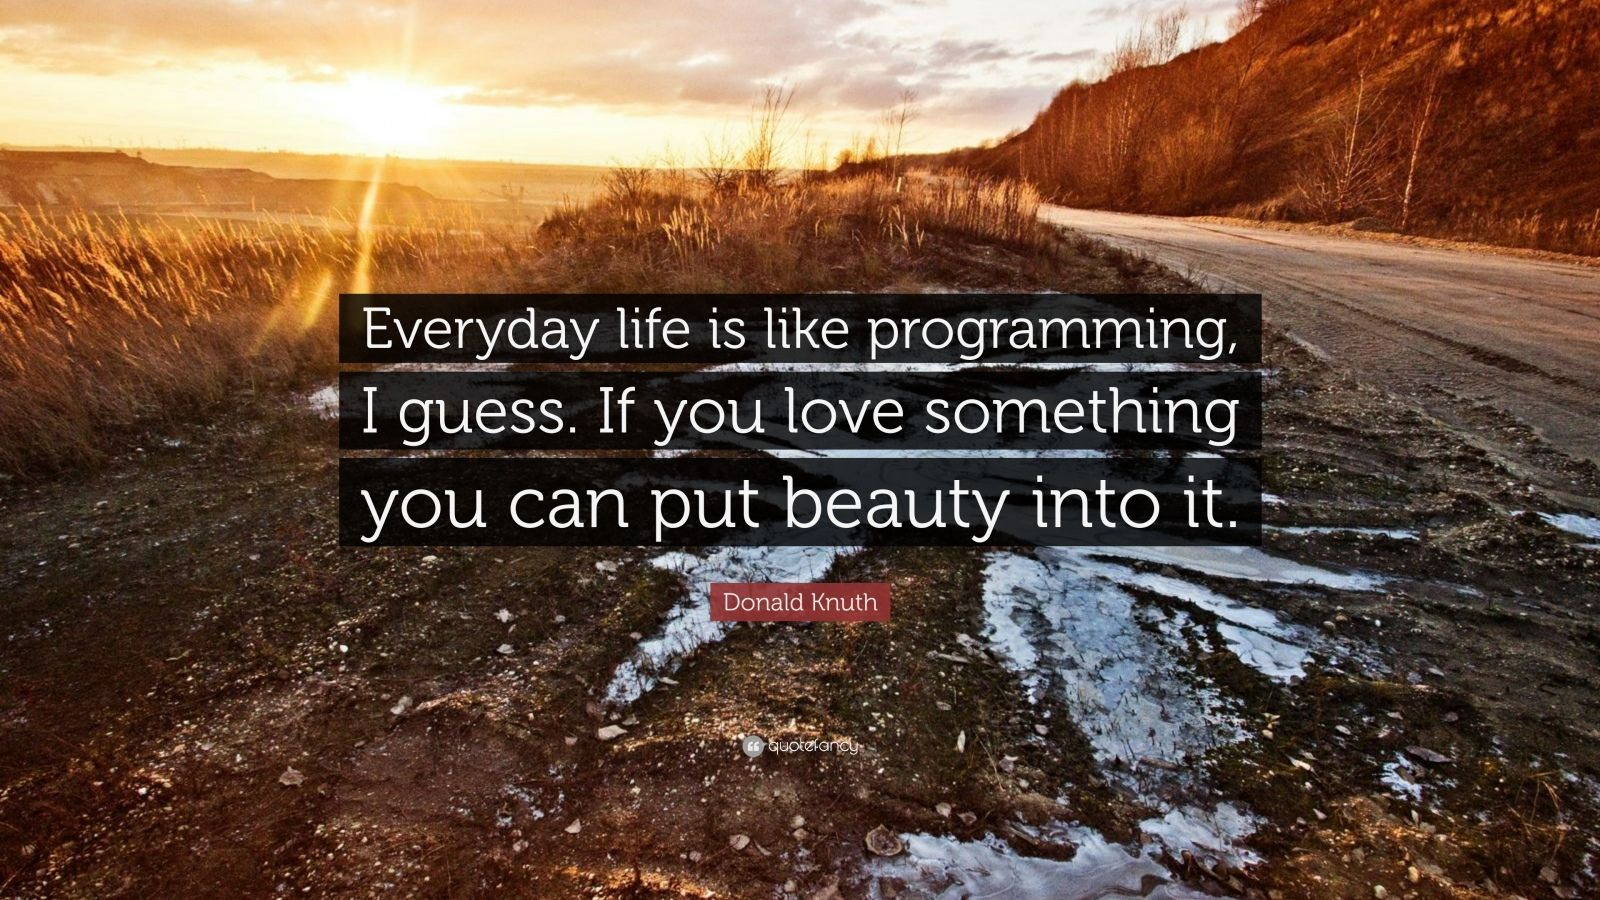 """Donald Knuth Quote: """"Everyday life is like programming, I guess. If you love something you can put beauty into it."""""""